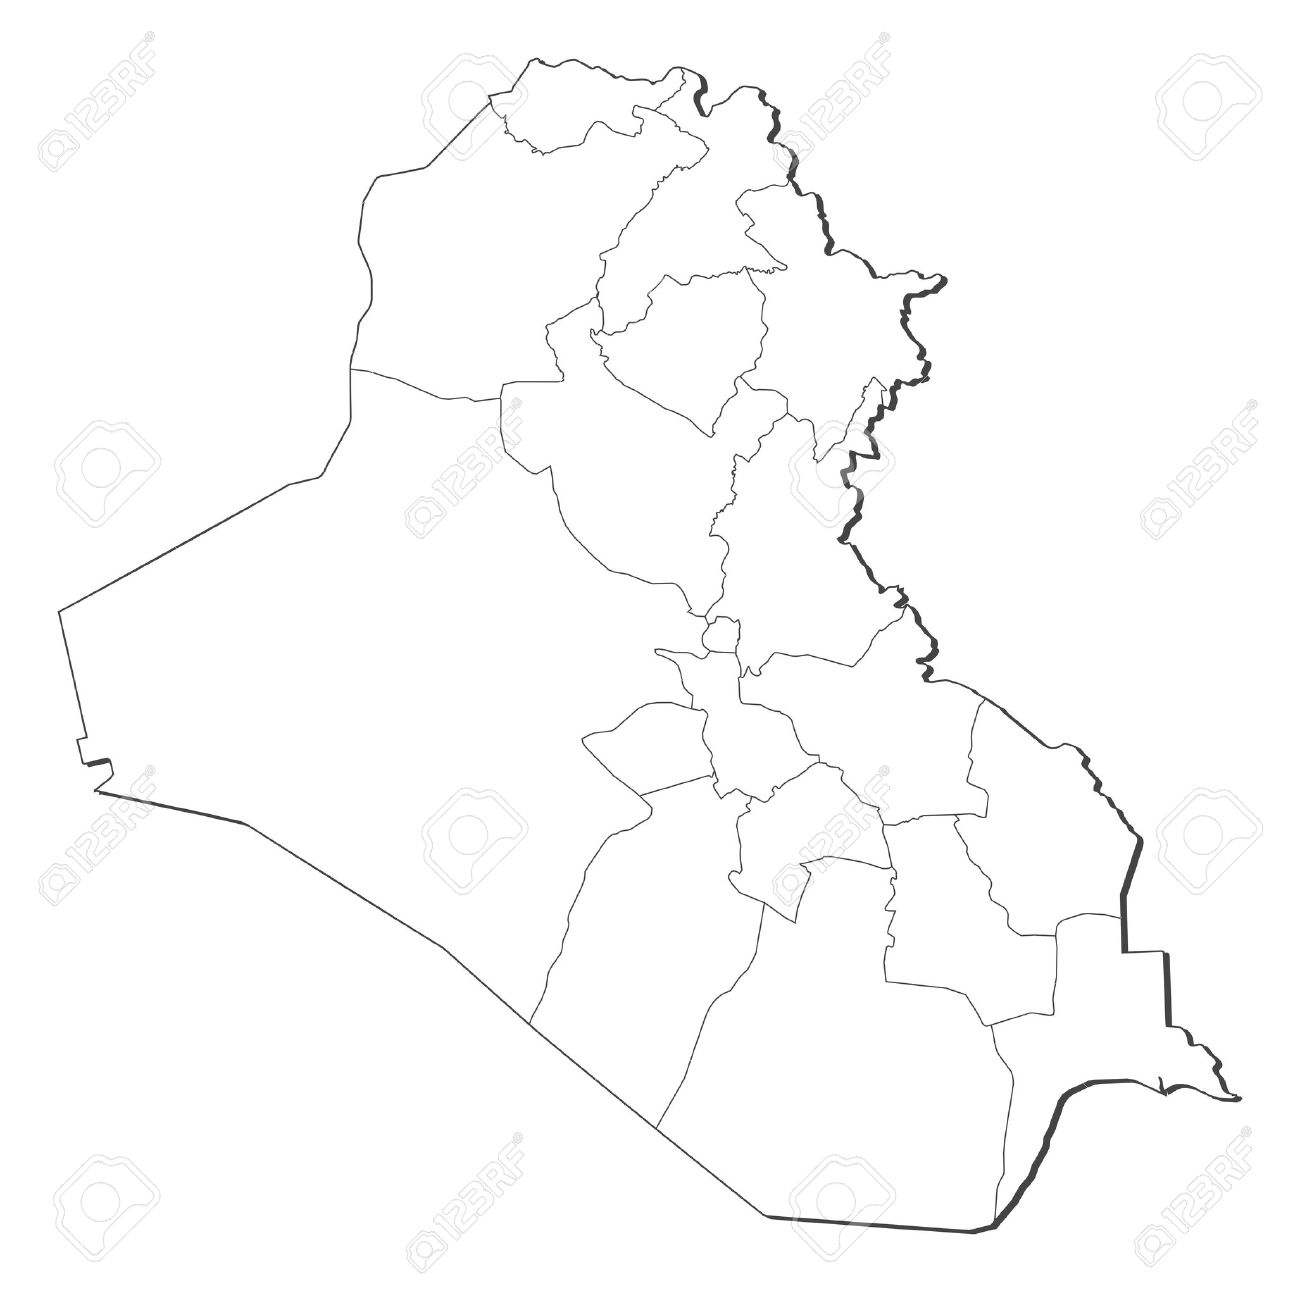 Political map of Iraq with the several governorates